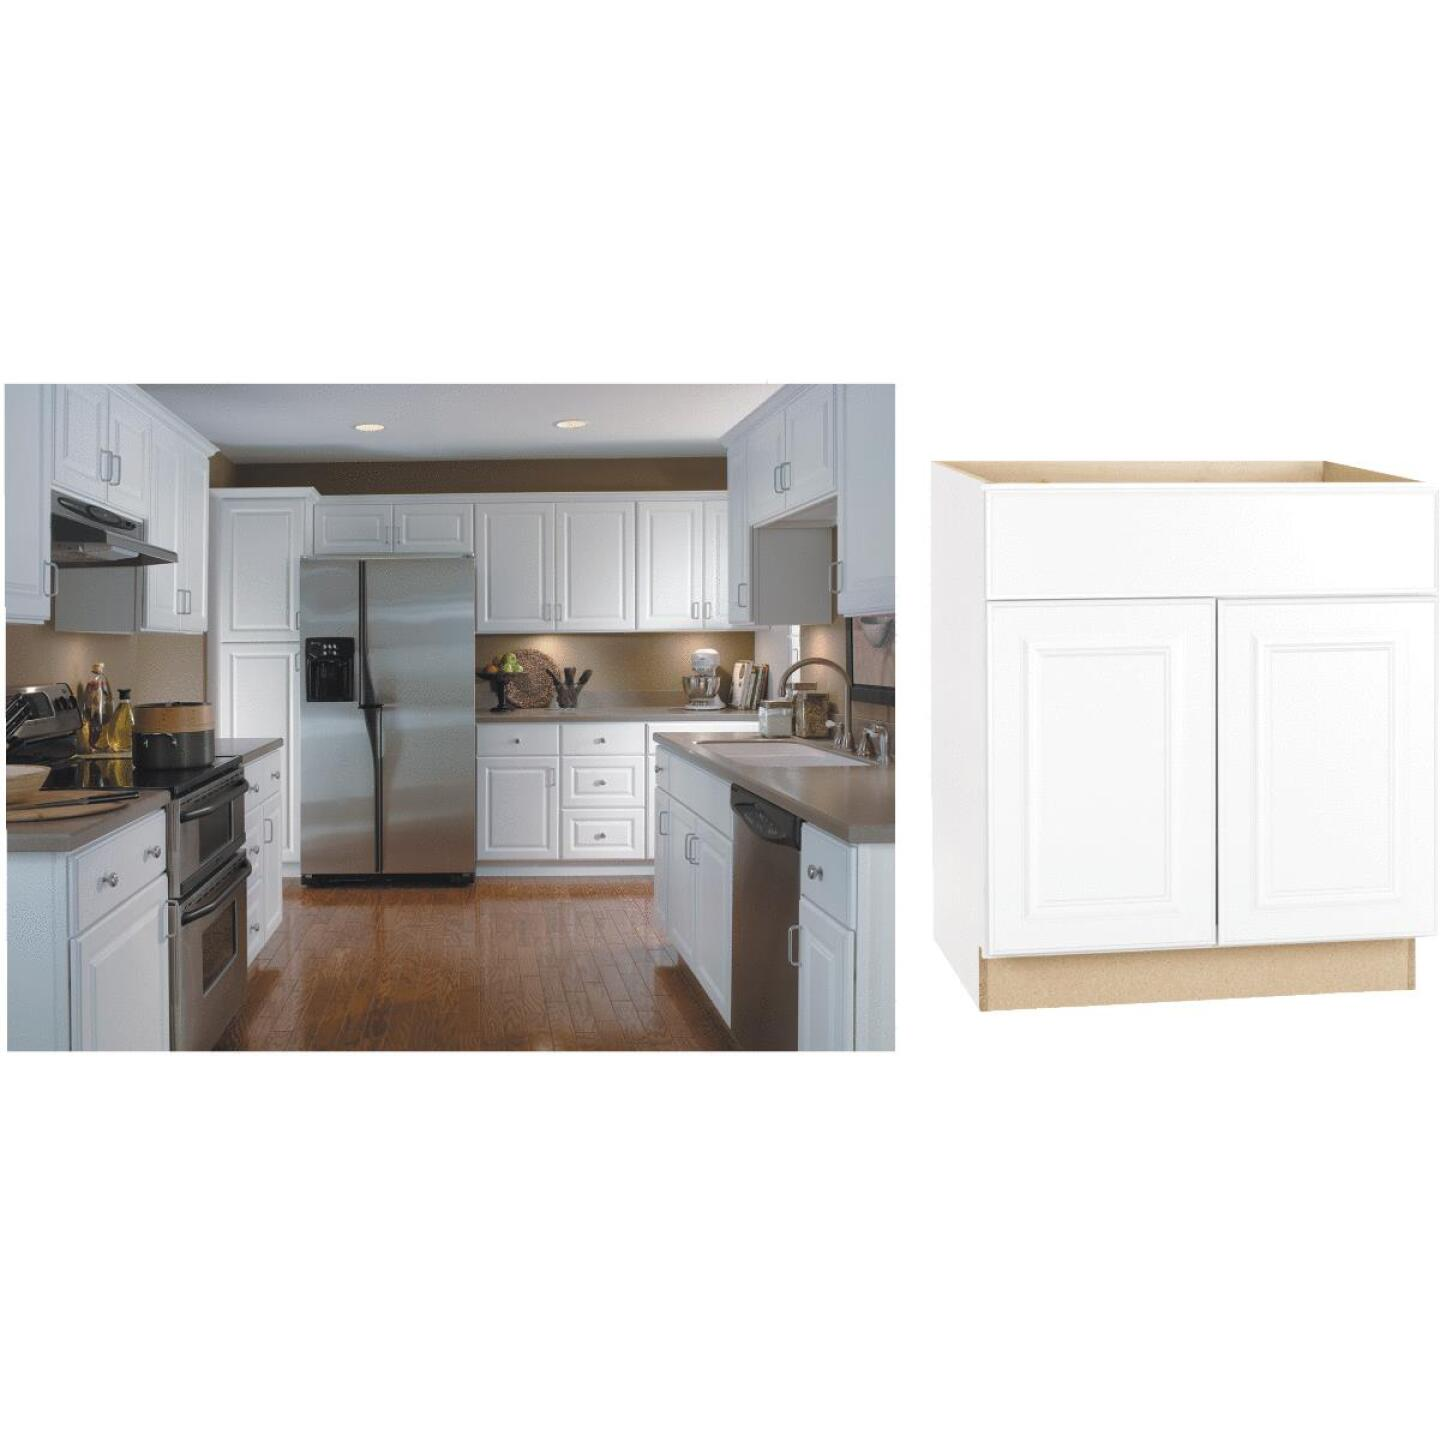 Continental Cabinets Hamilton 30 In. W x 34-1/2 In. H x 24 In. D Satin White Maple Sink/Cooktop Base Kitchen Cabinet Image 1